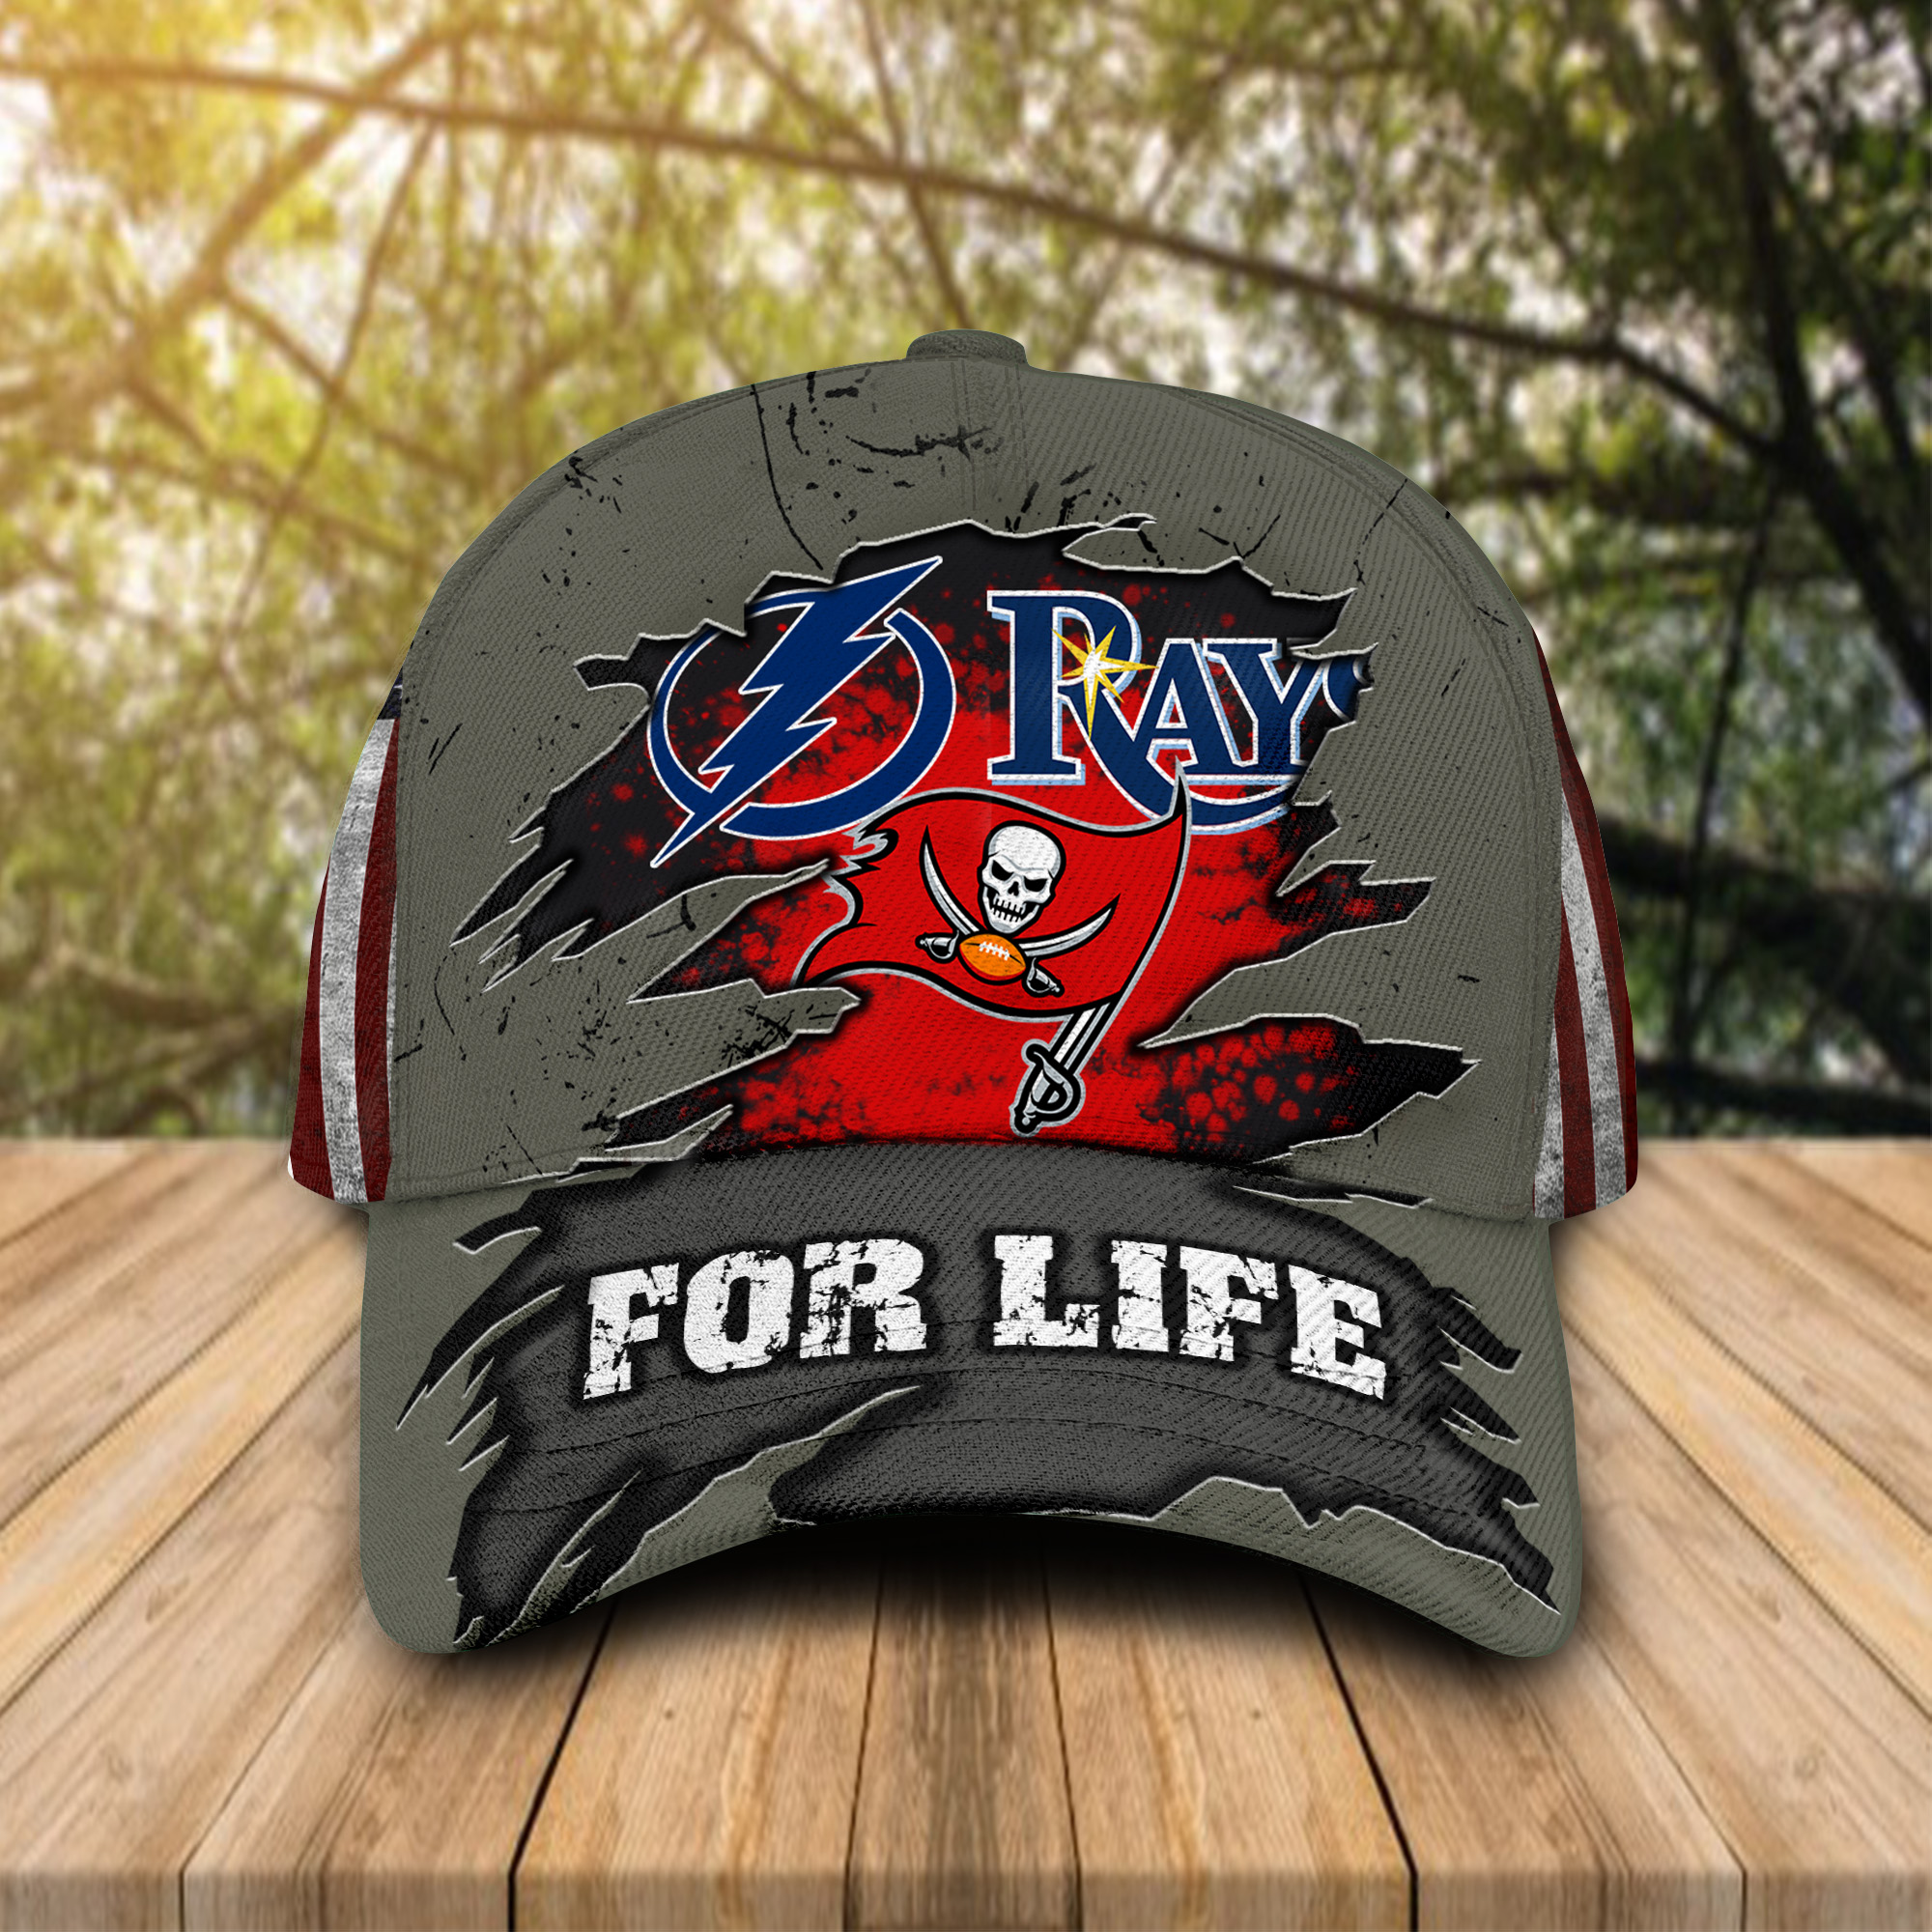 Tampa Bay sports for life cap hat